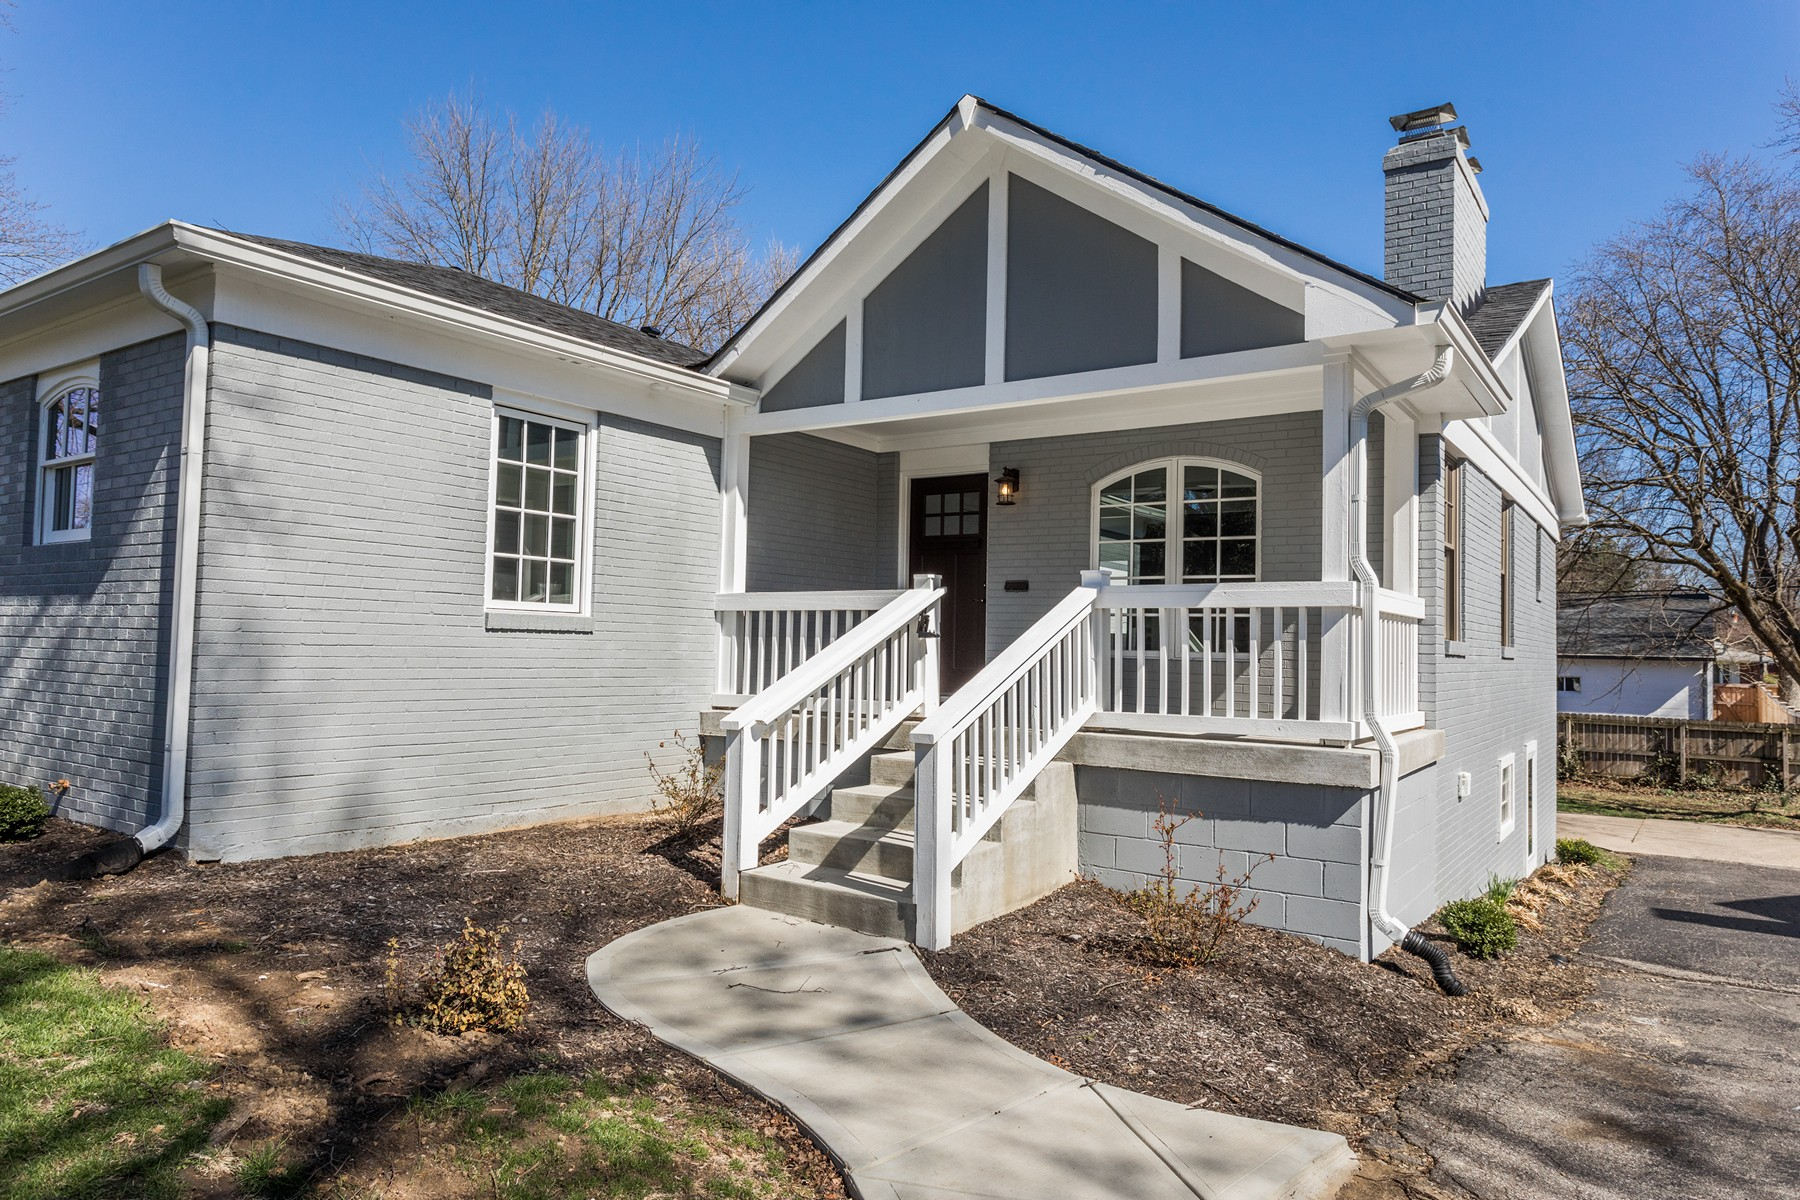 Single Family Home for Sale at Totally Transformed 7061 Warwick Road Arden, Indianapolis, Indiana, 46220 United States